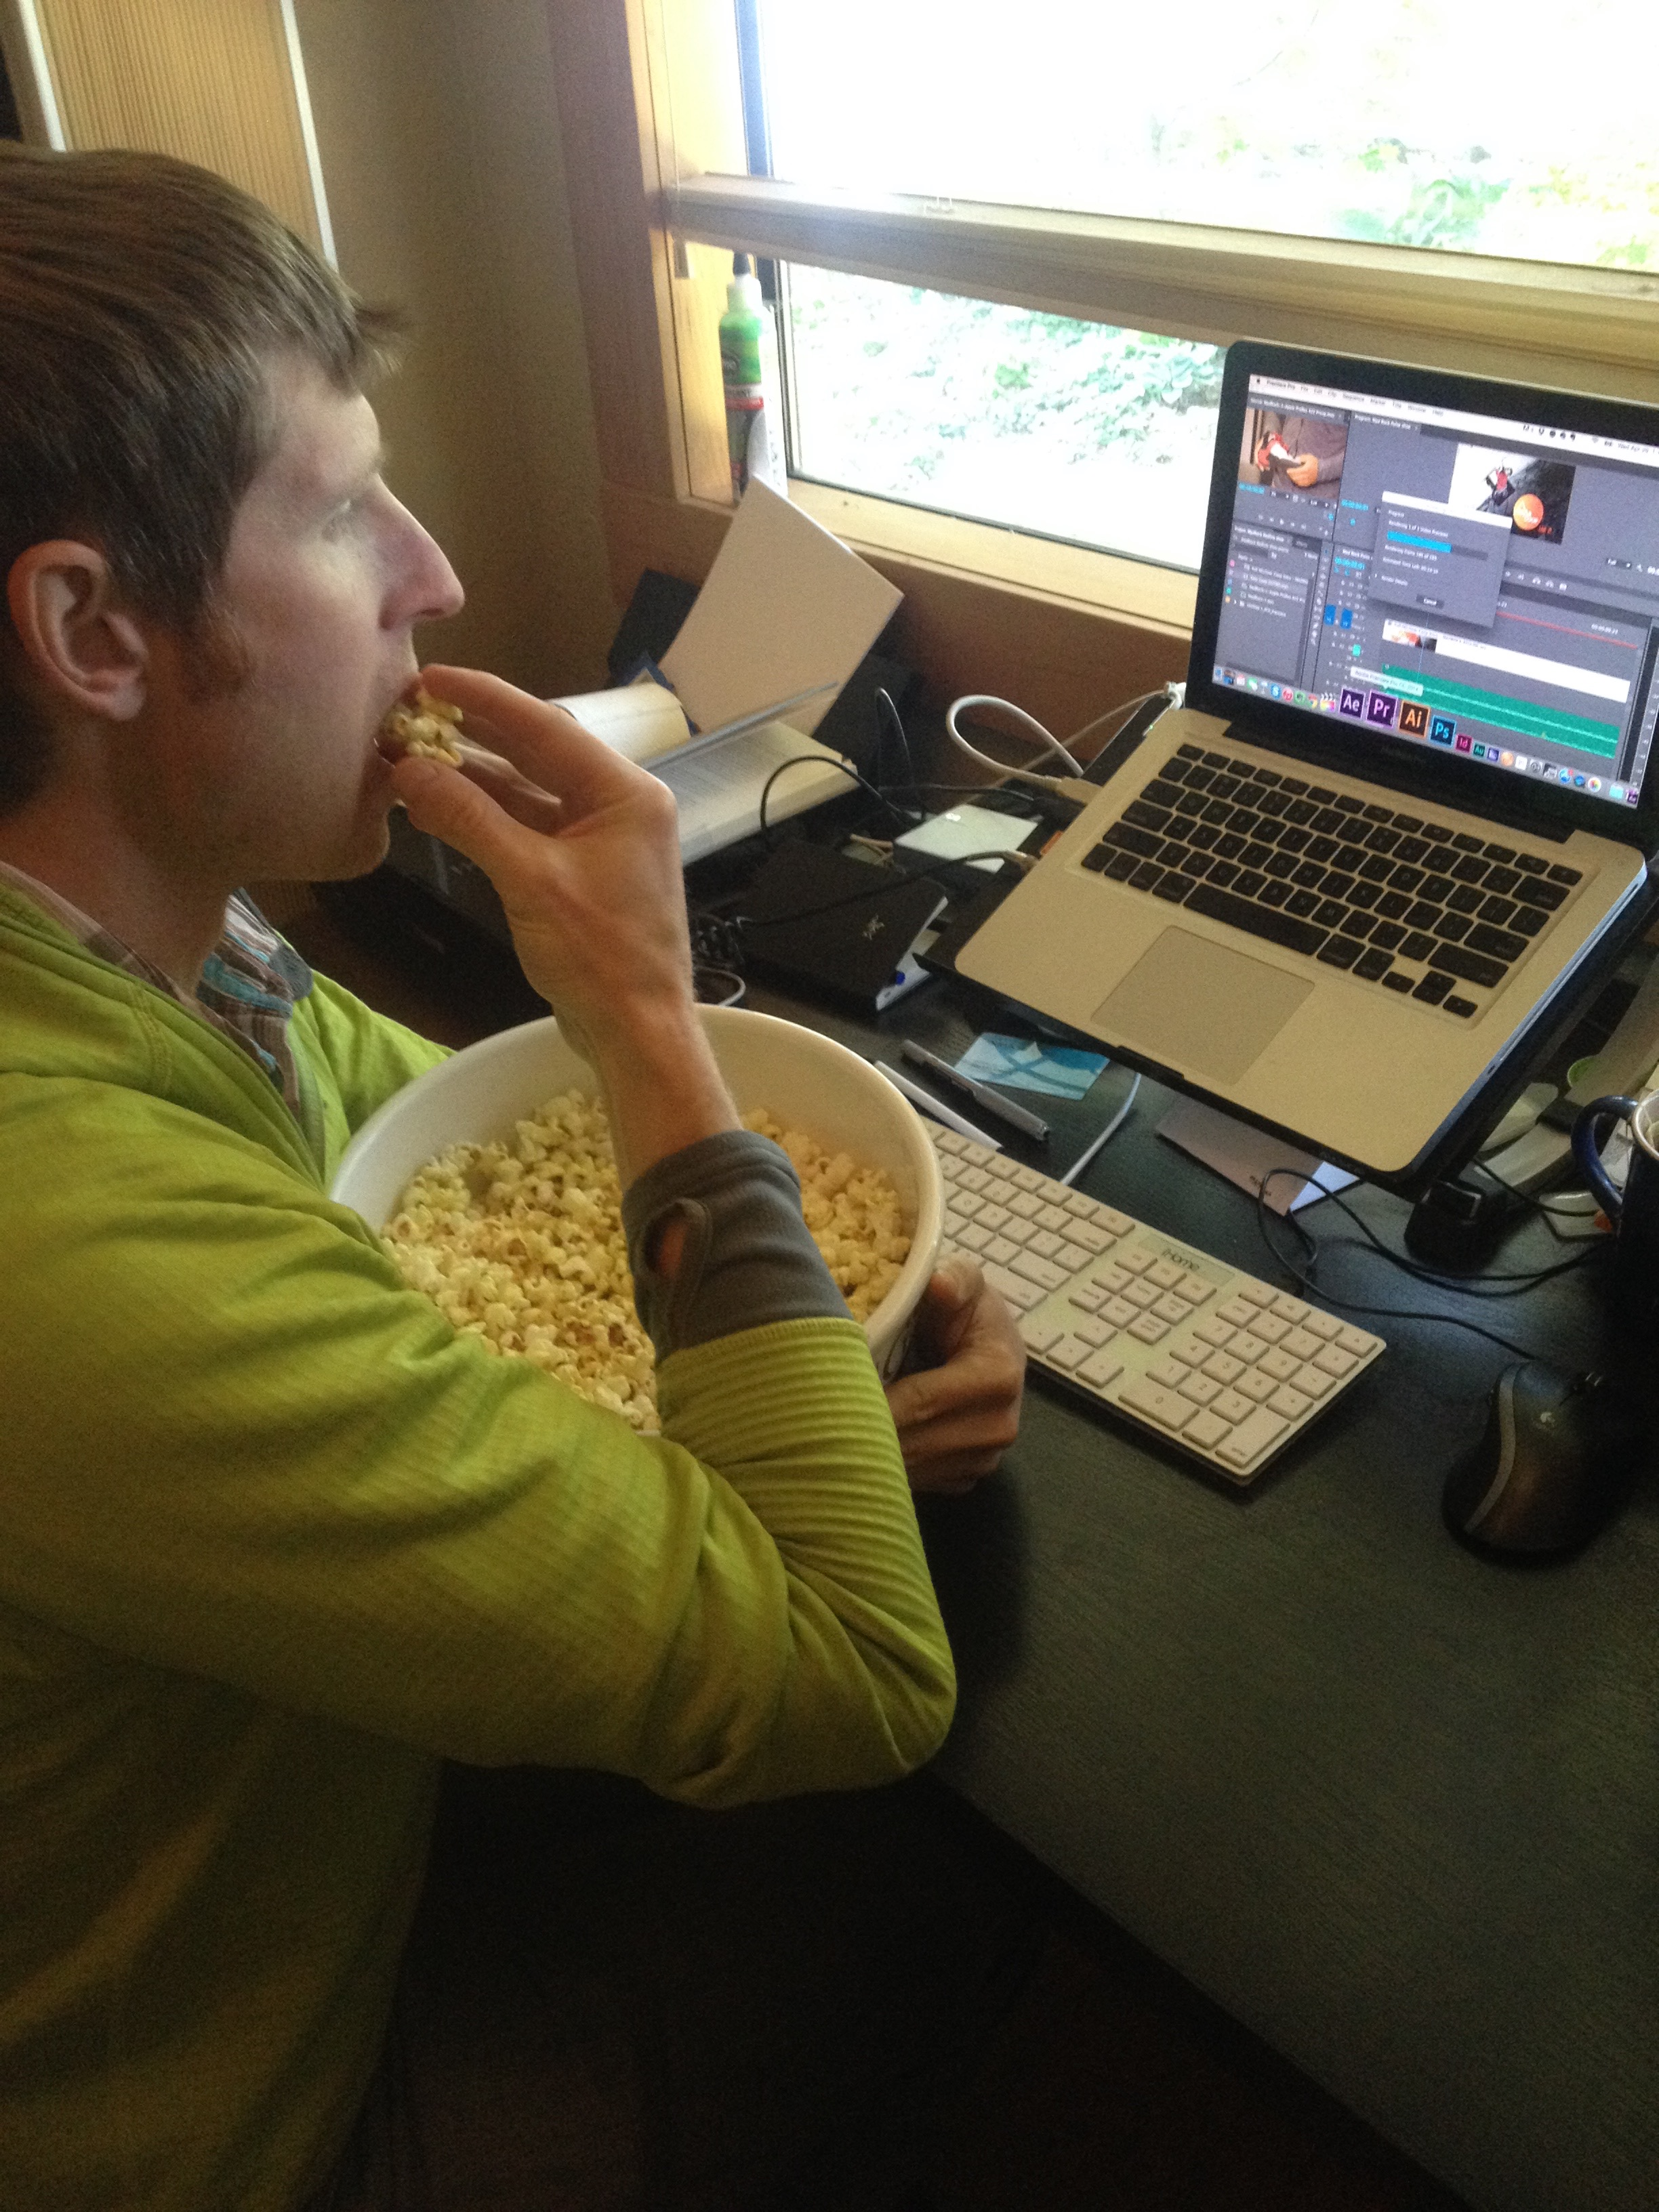 Andreas with popcorn